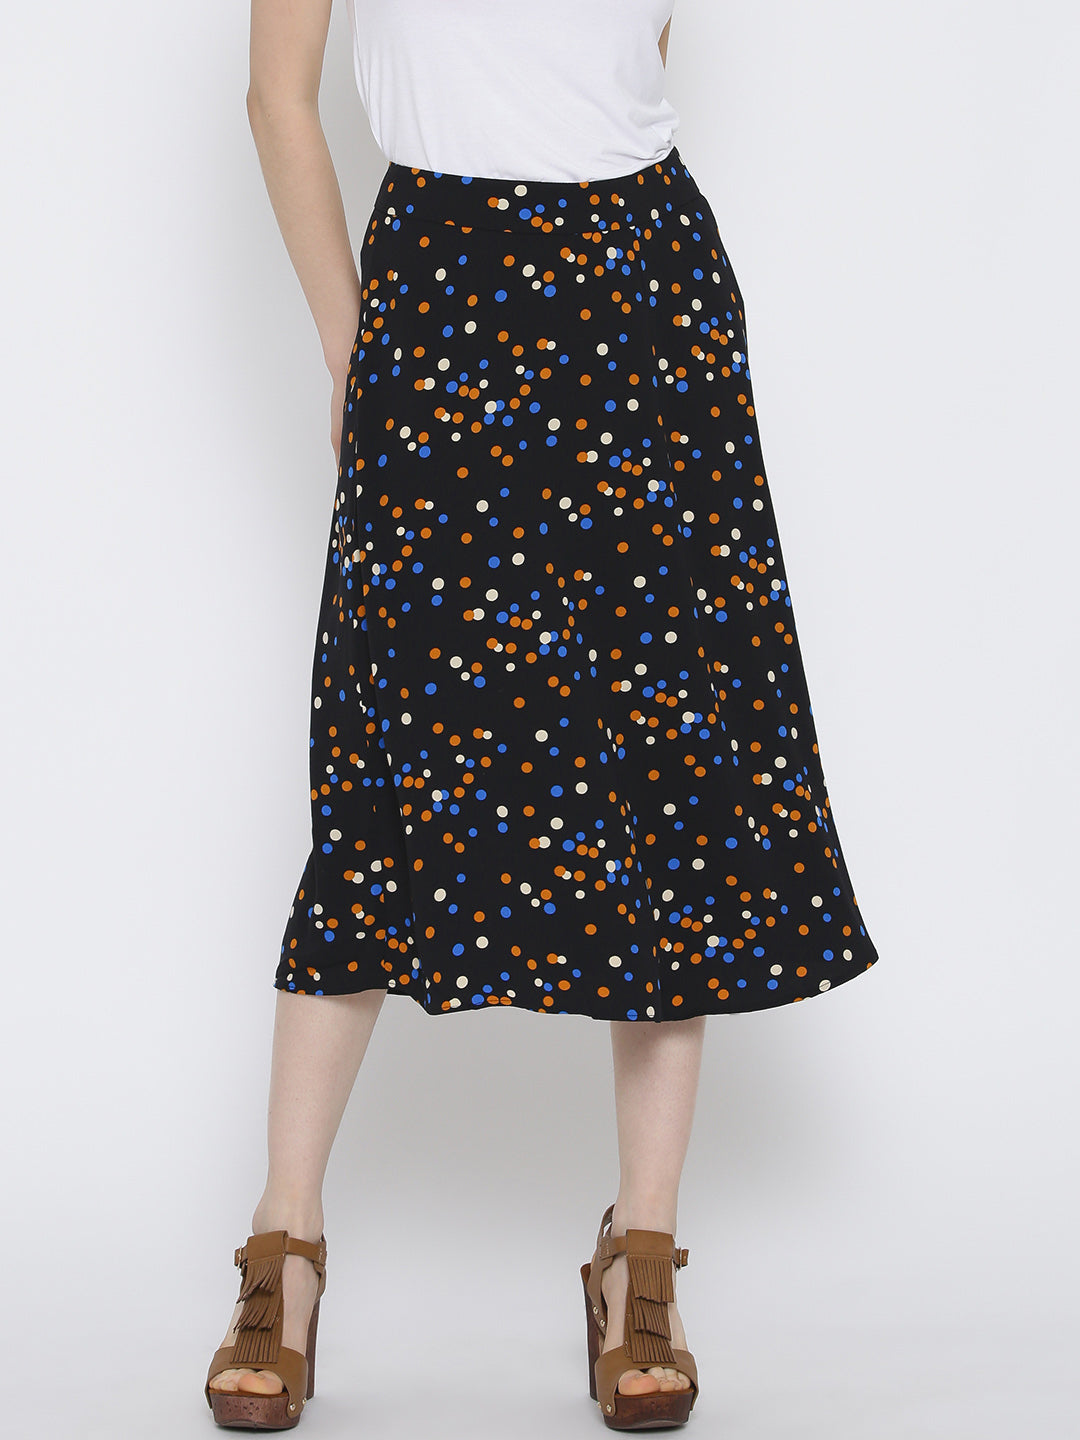 Black Polka Dot Print A-Line Skirt